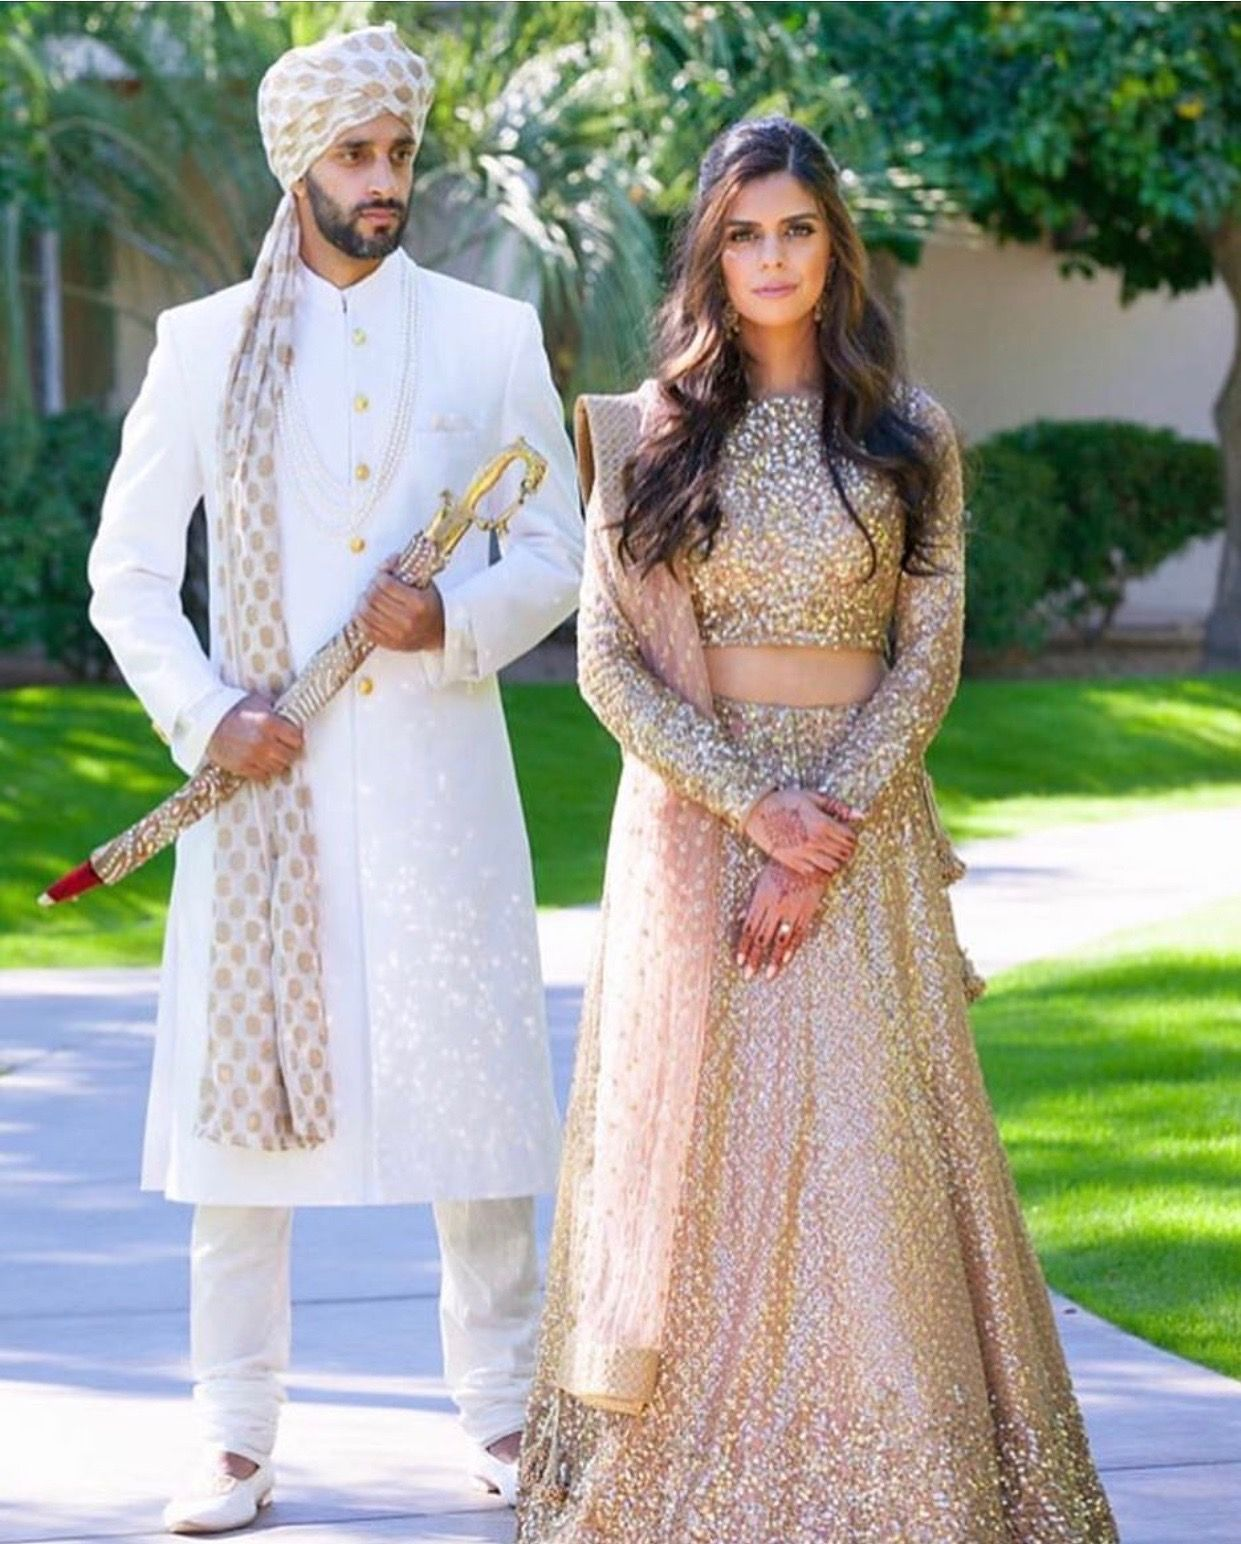 Instagram | Outfits | Pinterest | Instagram, Sherwani and Indian ...